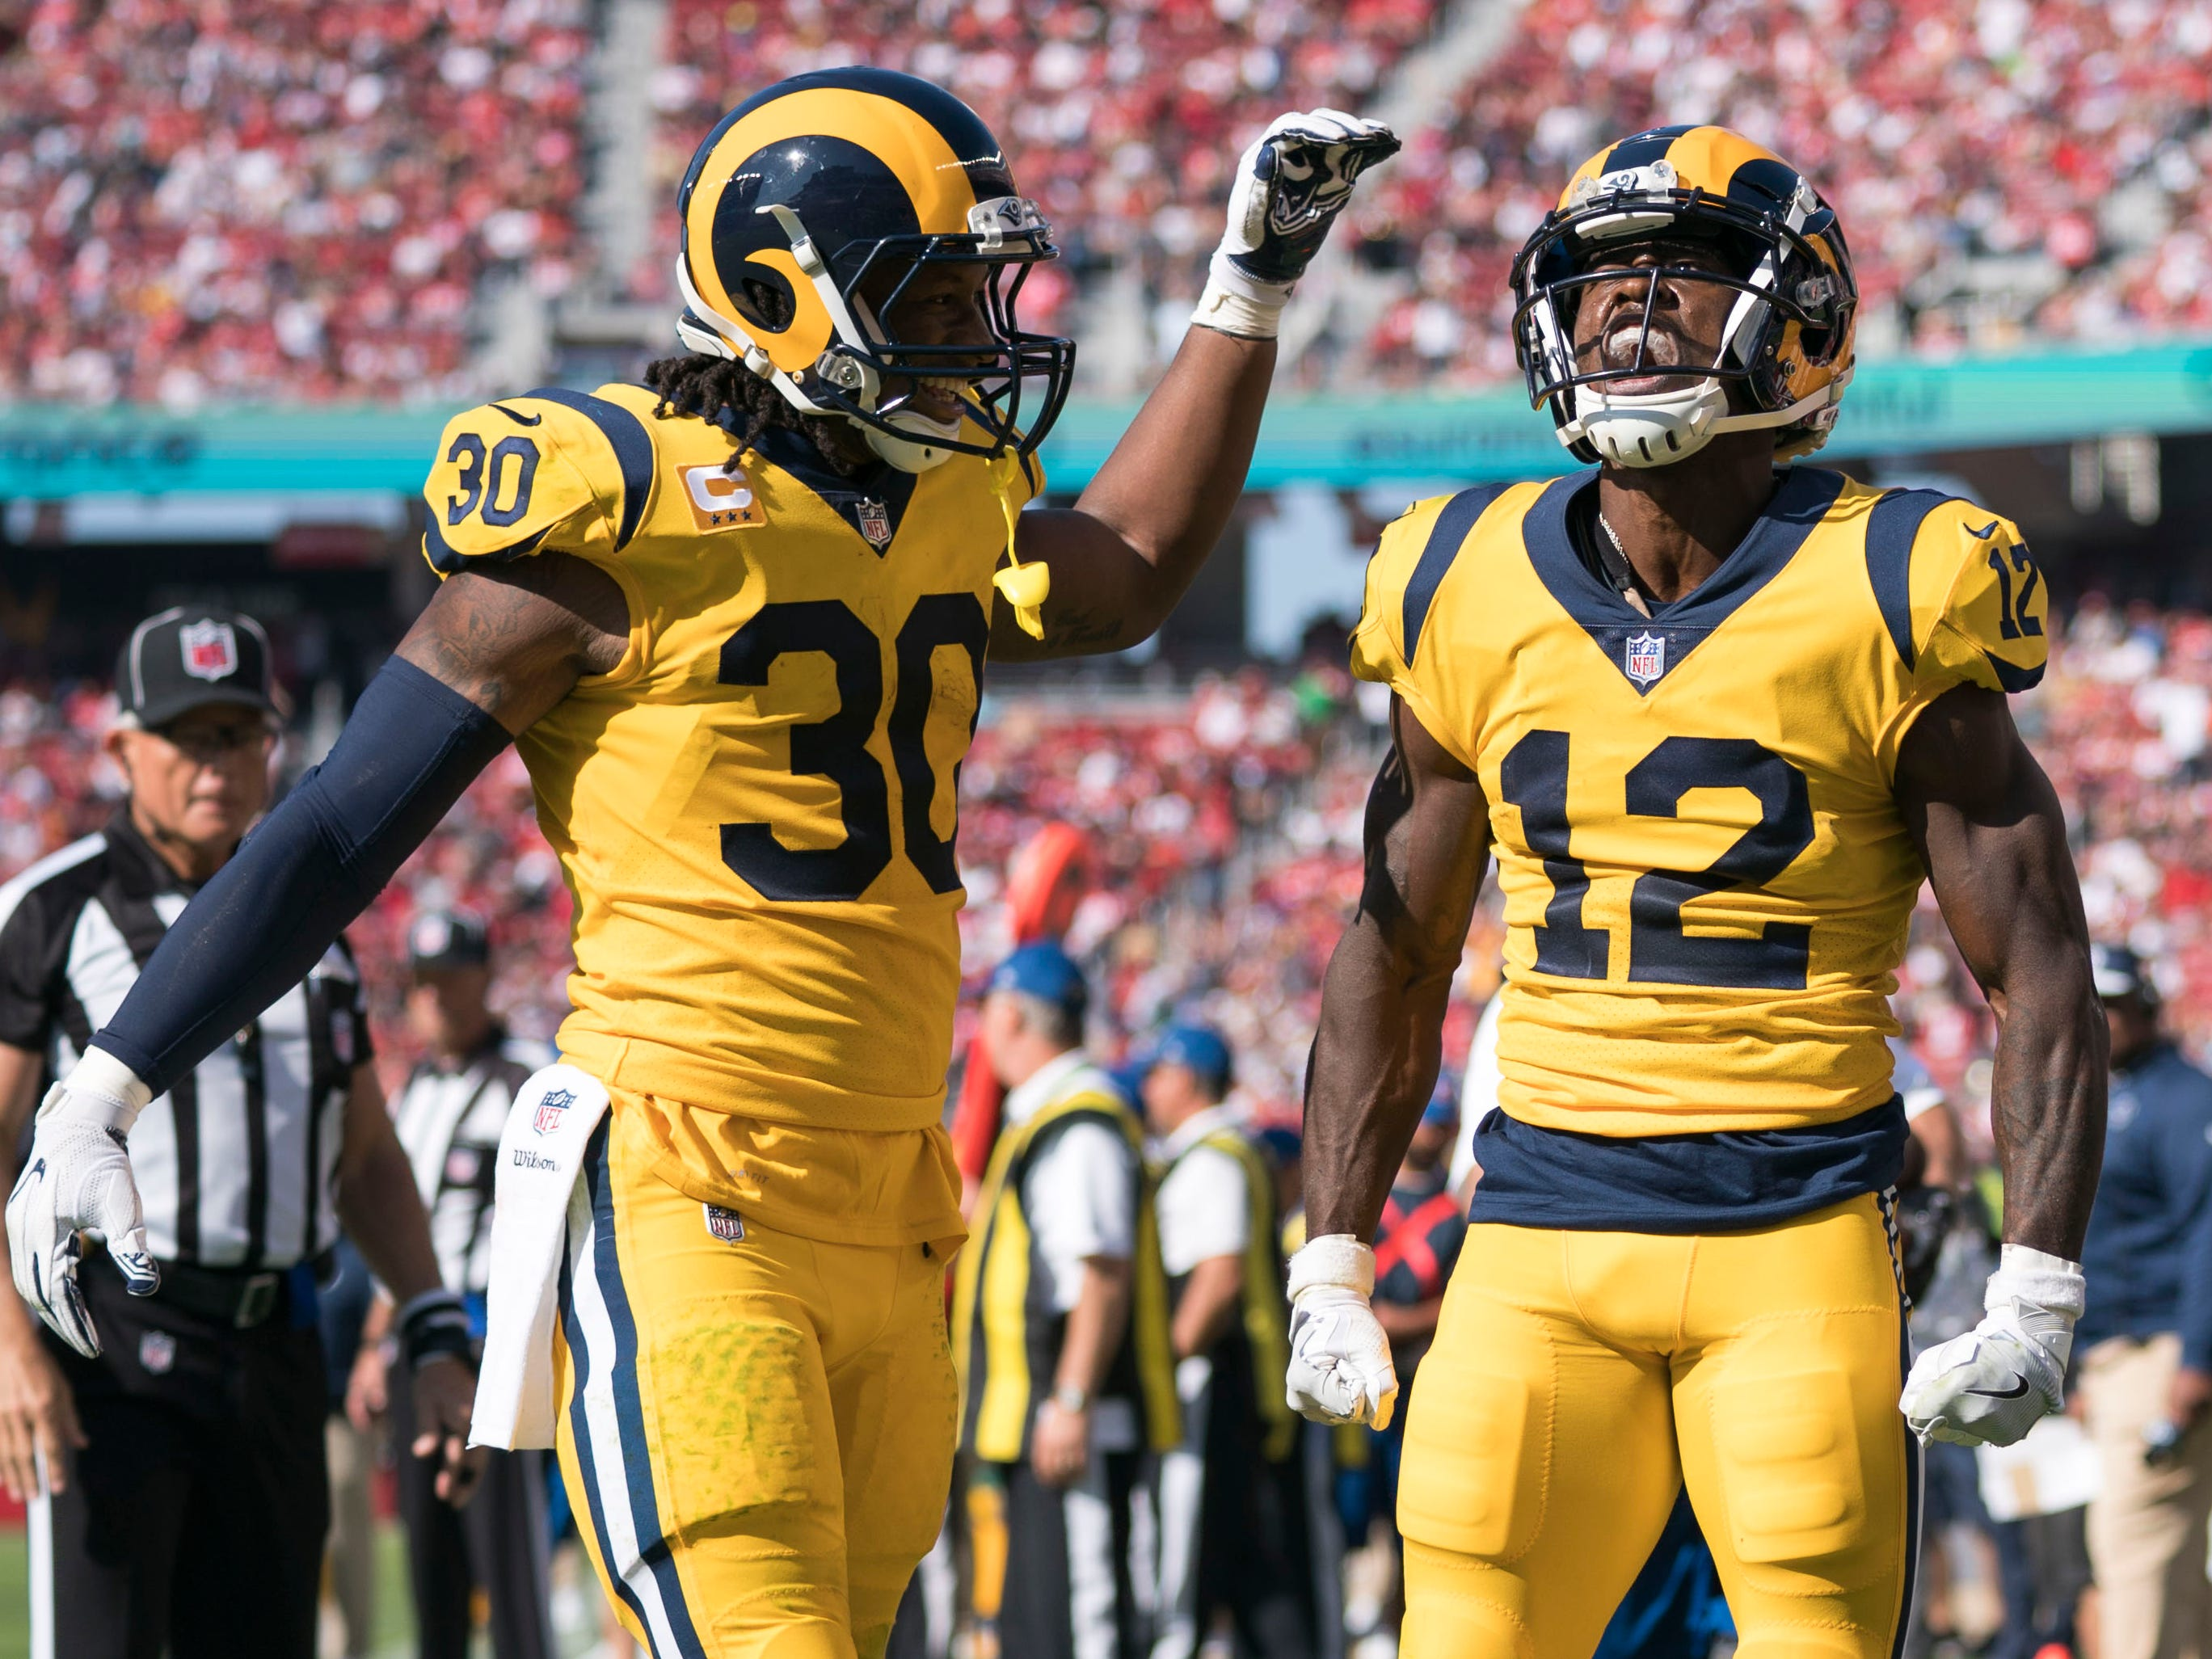 1. Rams (1): They may not have that 'x' next to their name for clinching playoff berth, but all 24 teams starting 7-0 since 1990 have reached postseason.